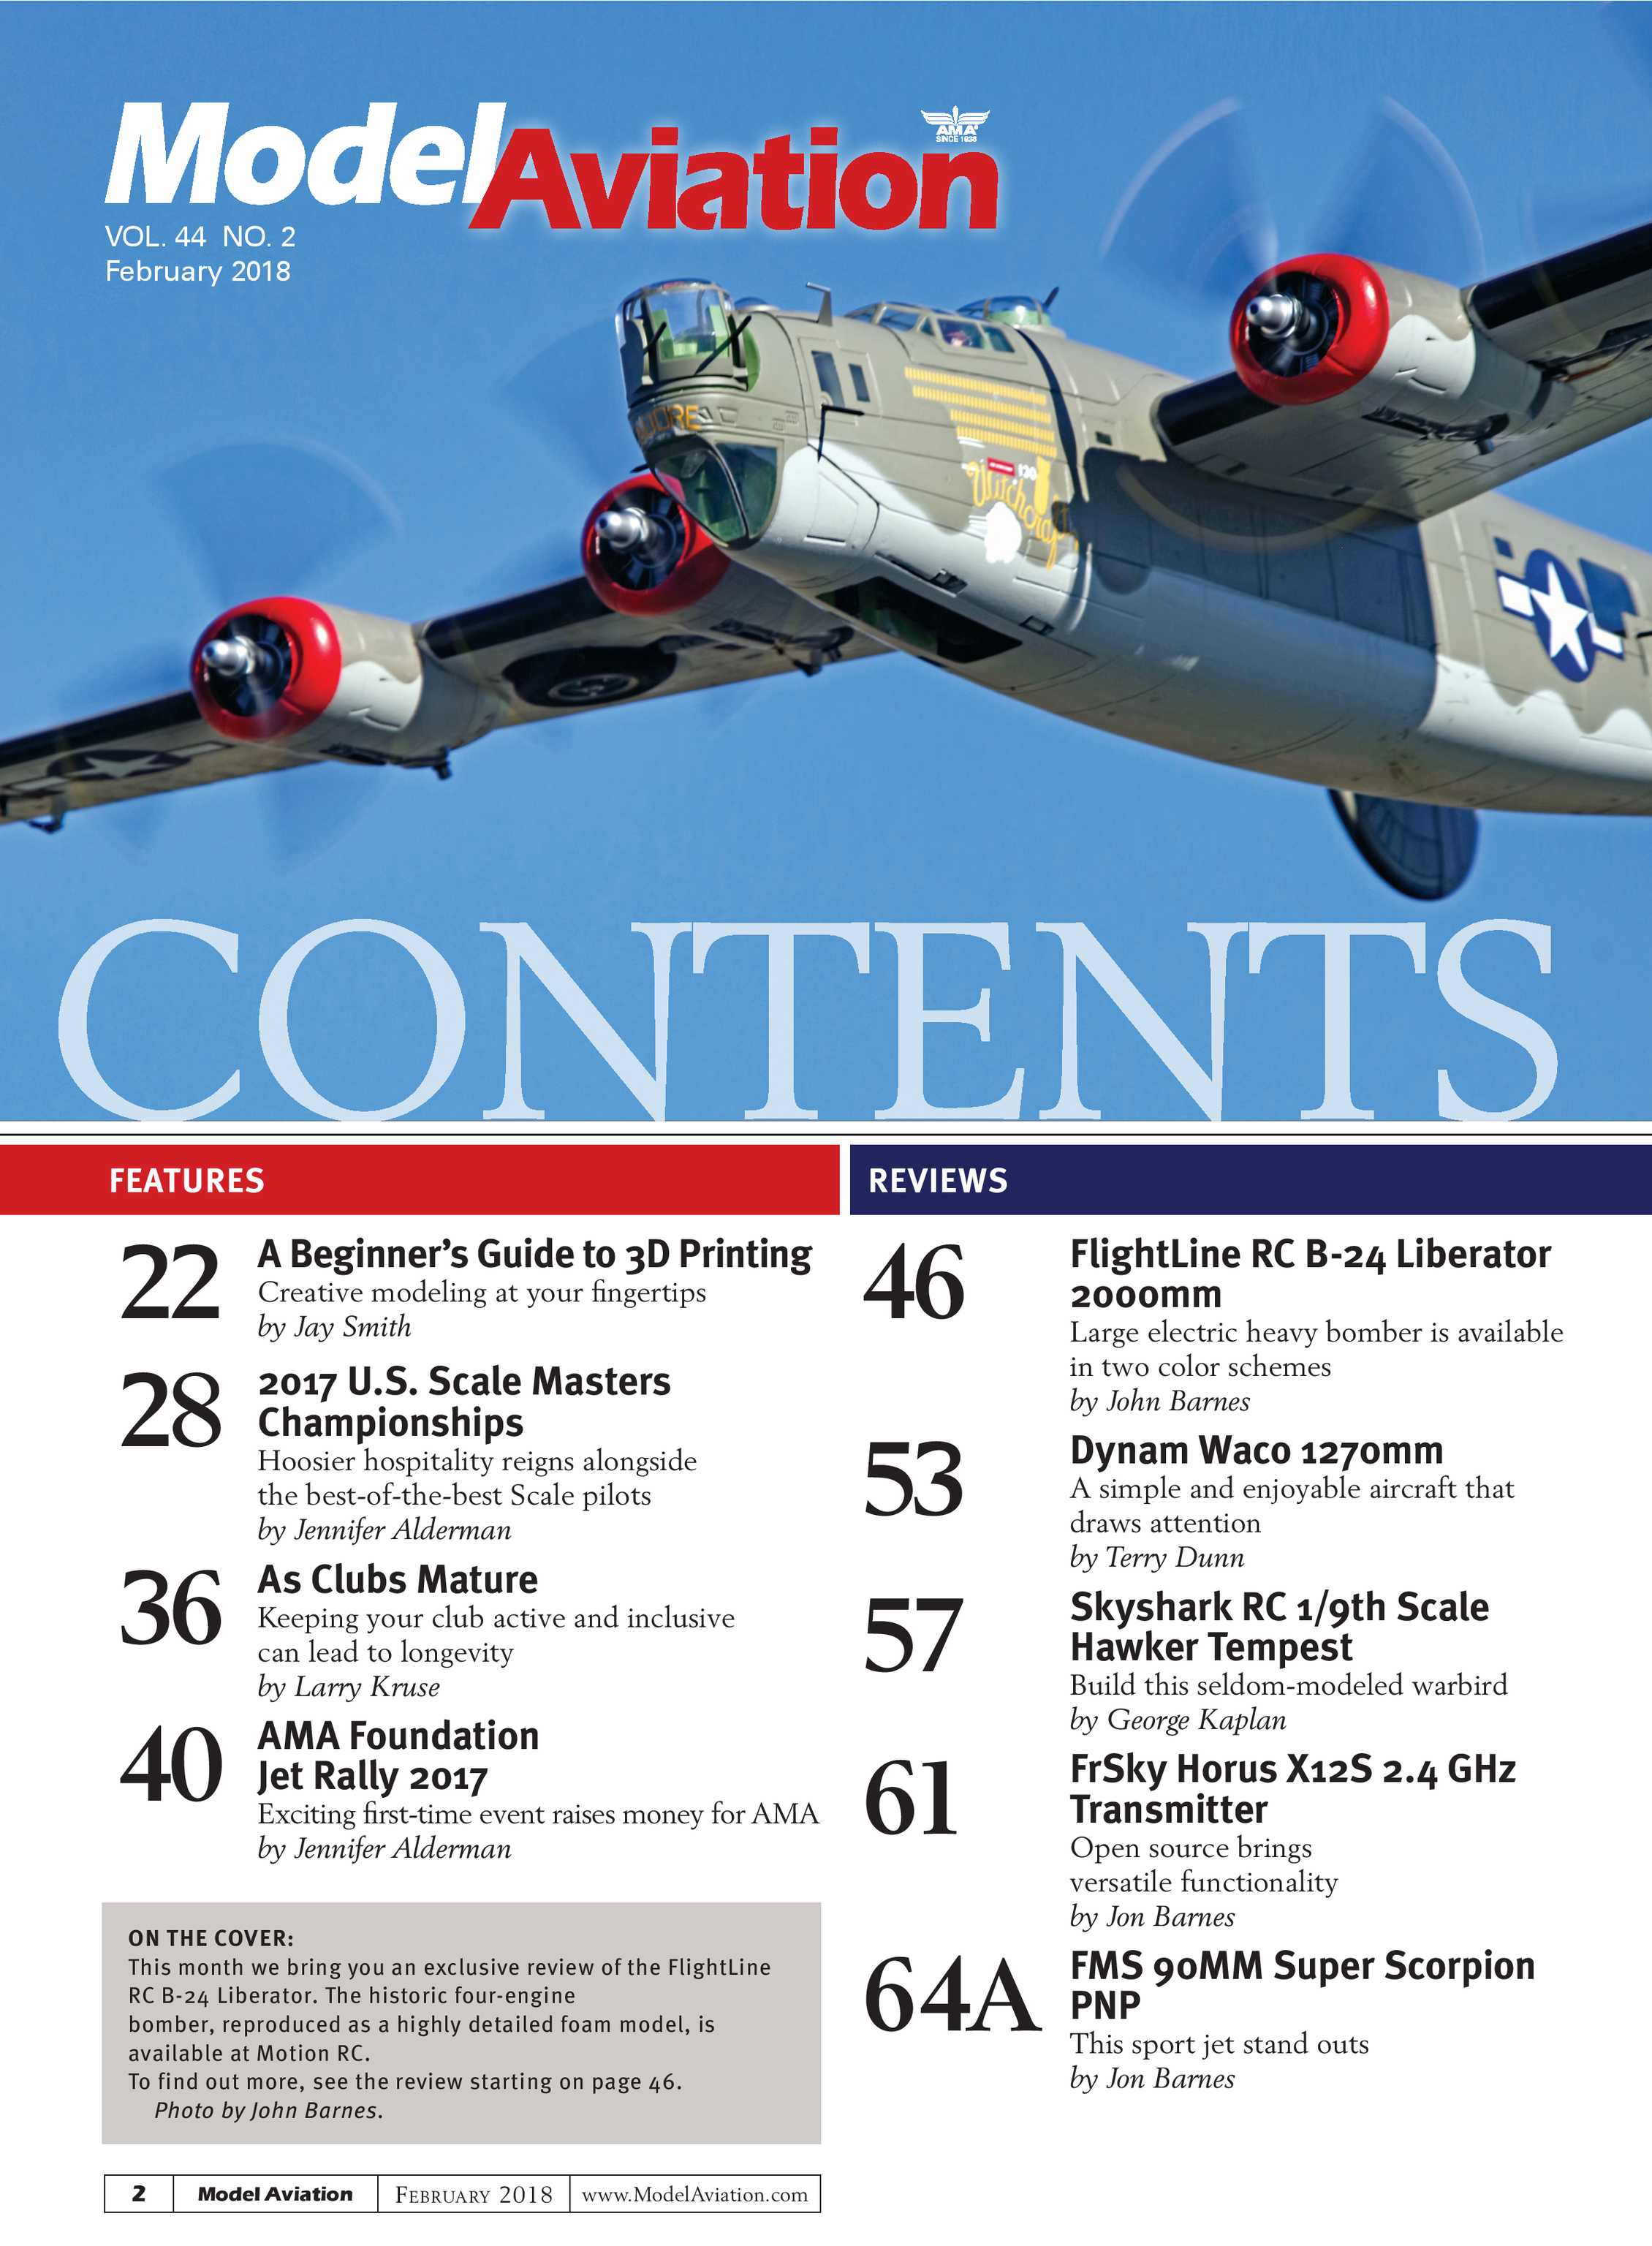 Model Aviation - February 2018 - page 2